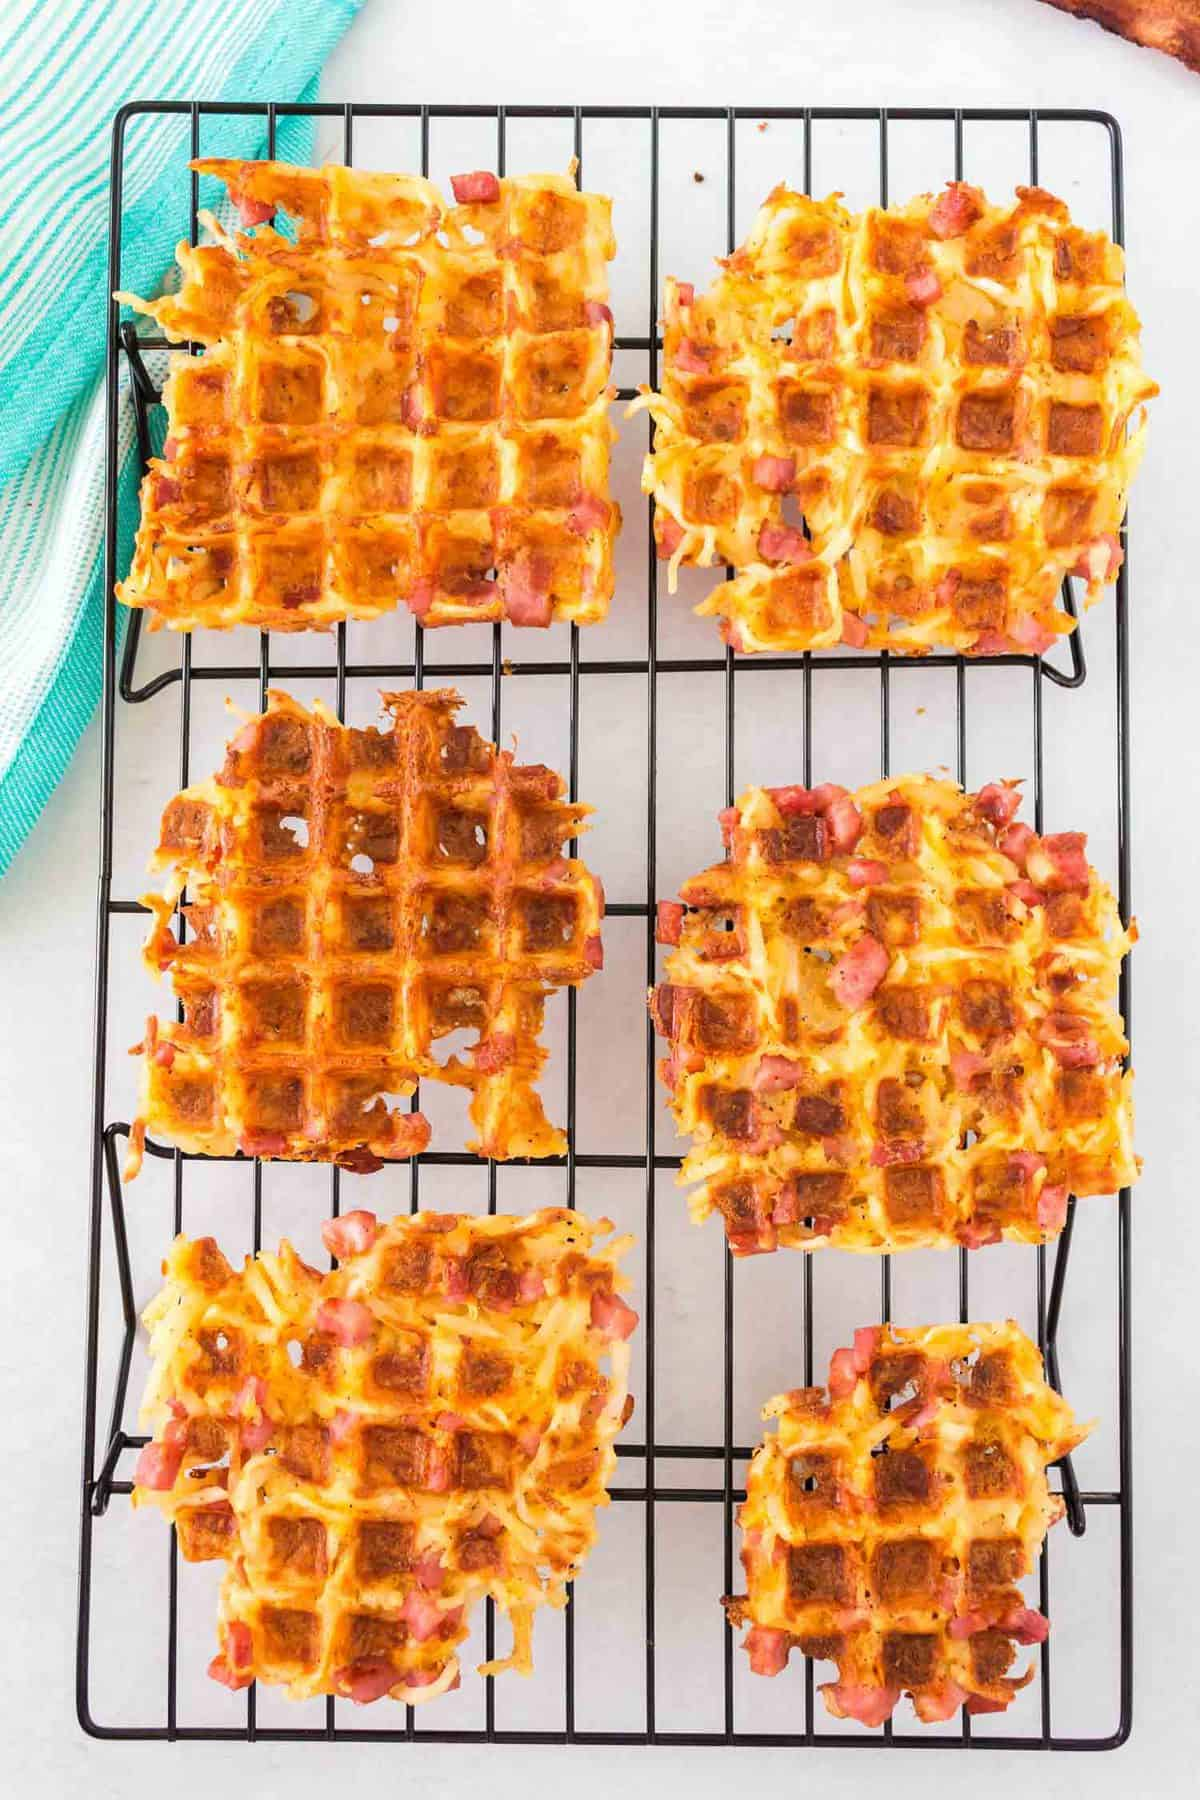 Overhead view of waffles made with hash browns, ham, and cheese.